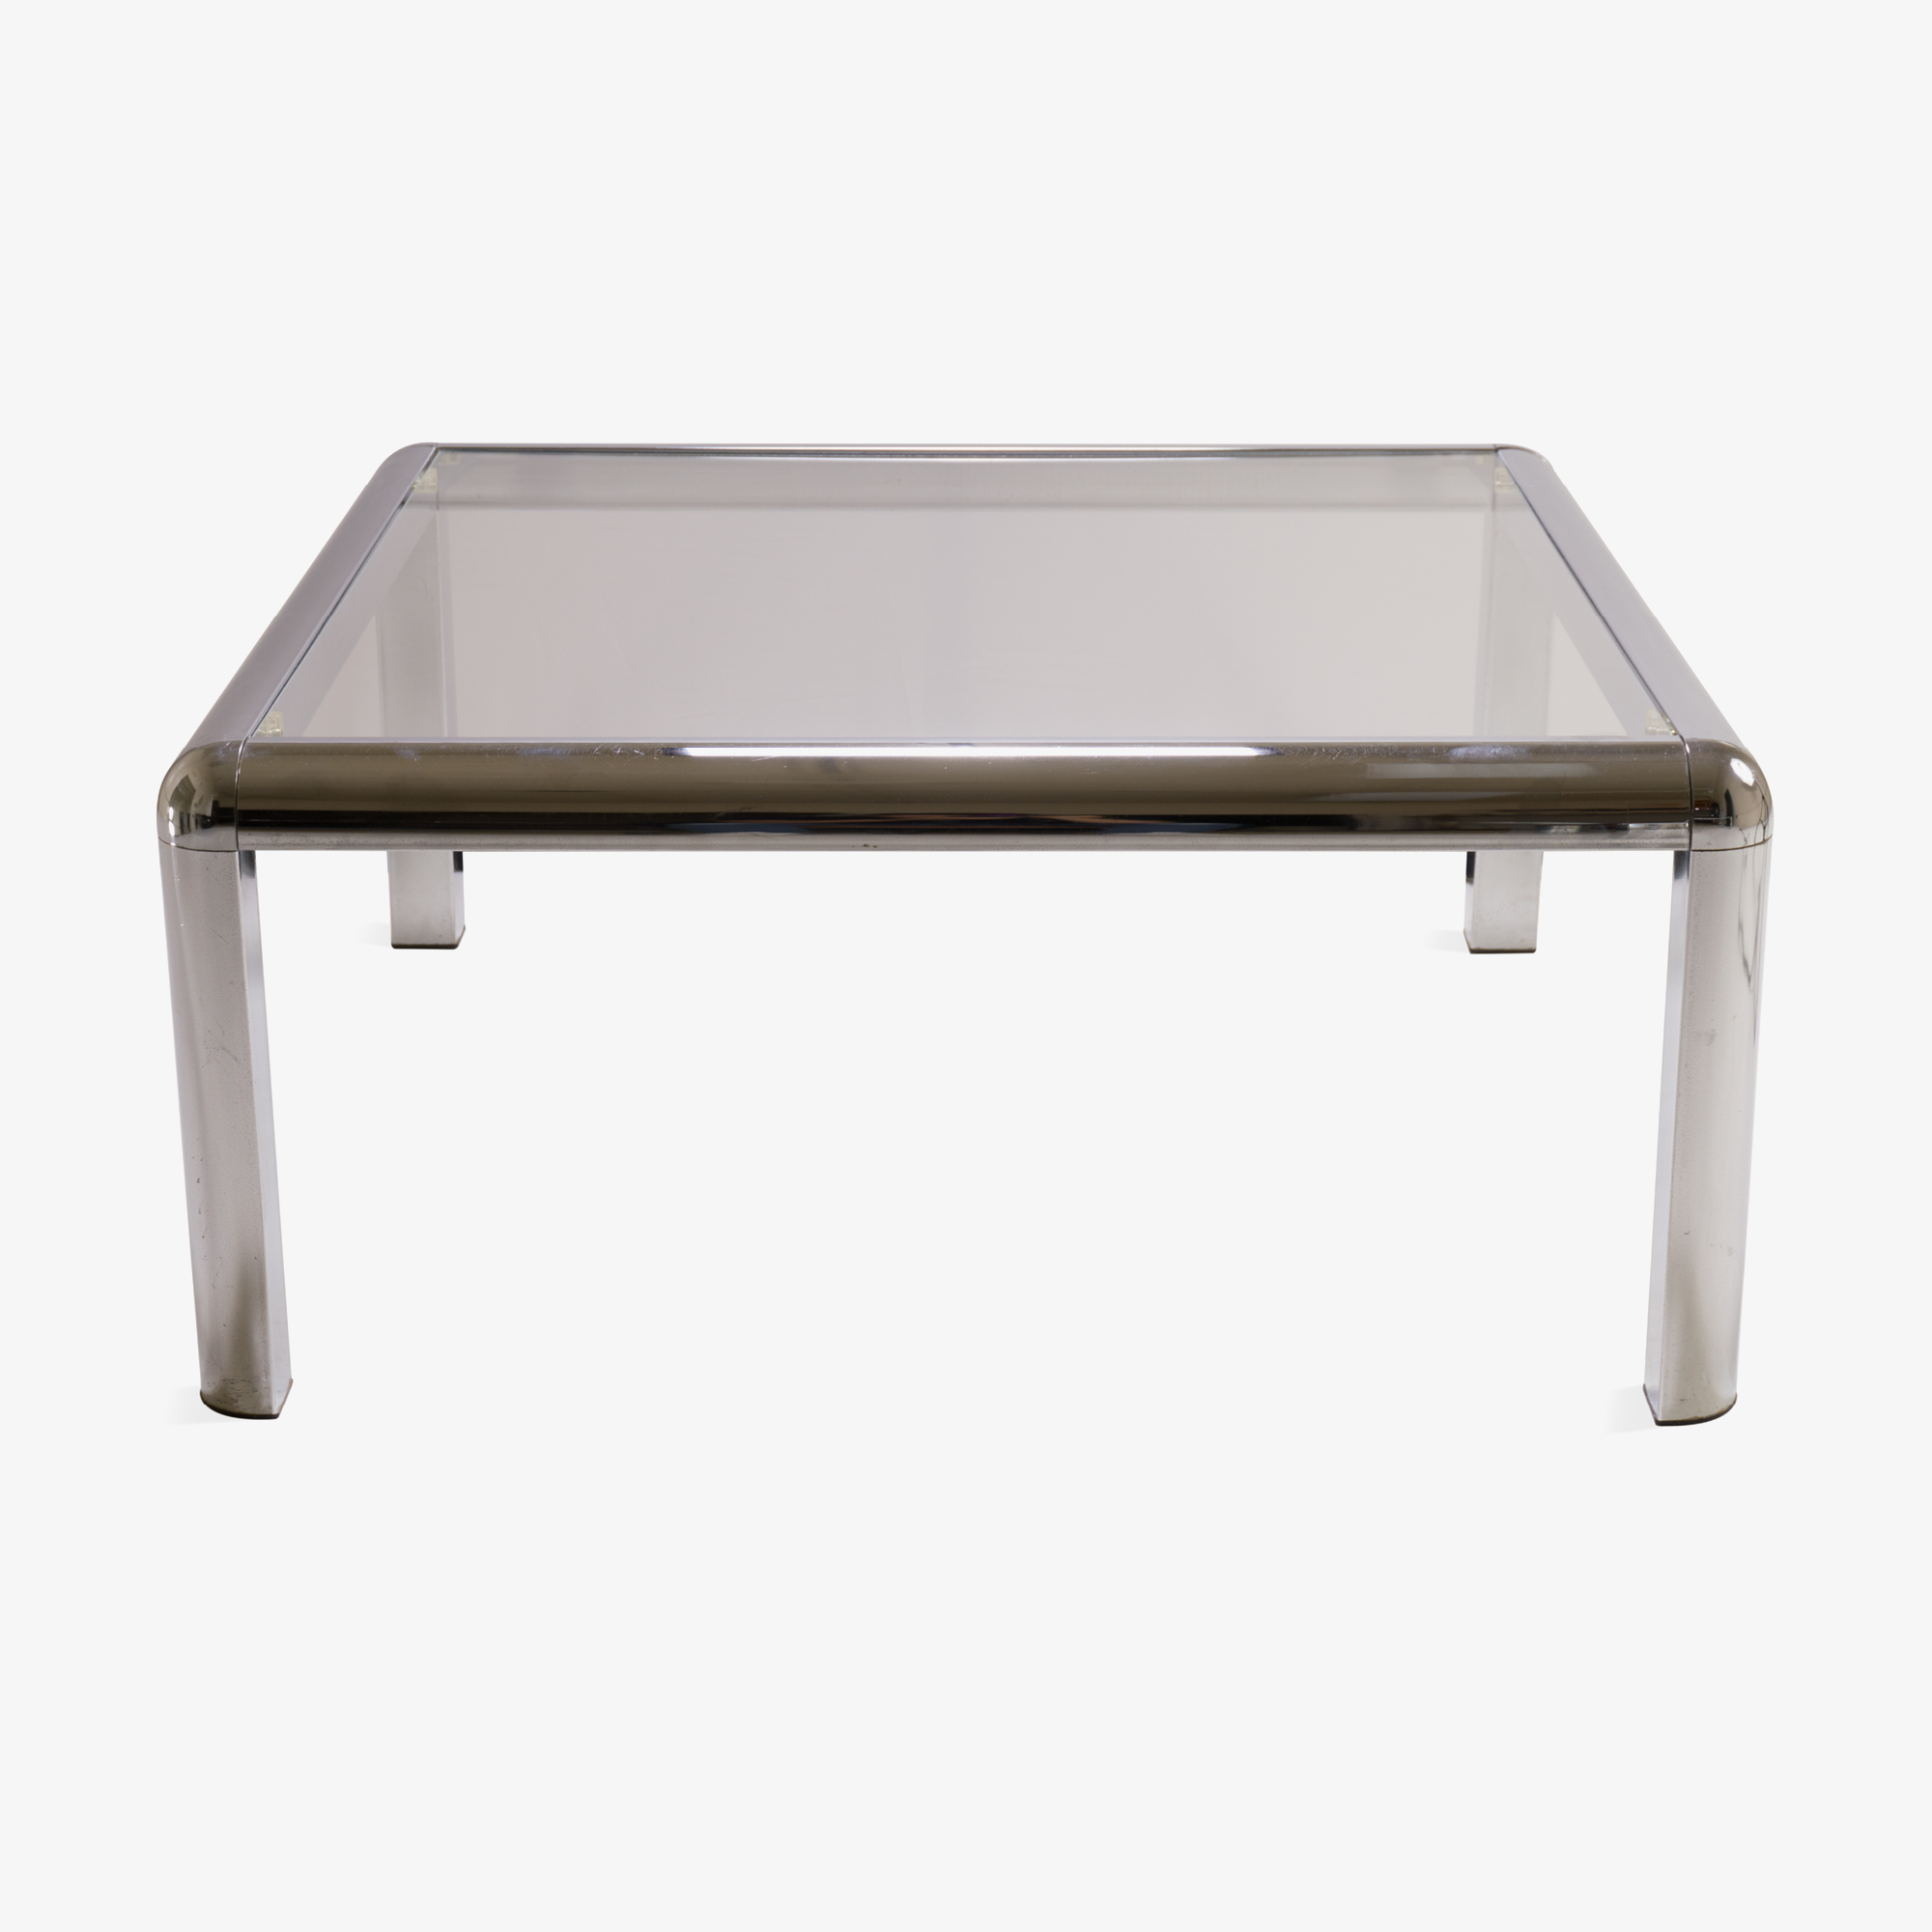 Mid-Century Square Chrome Cocktail Table with Rounded Frame.png